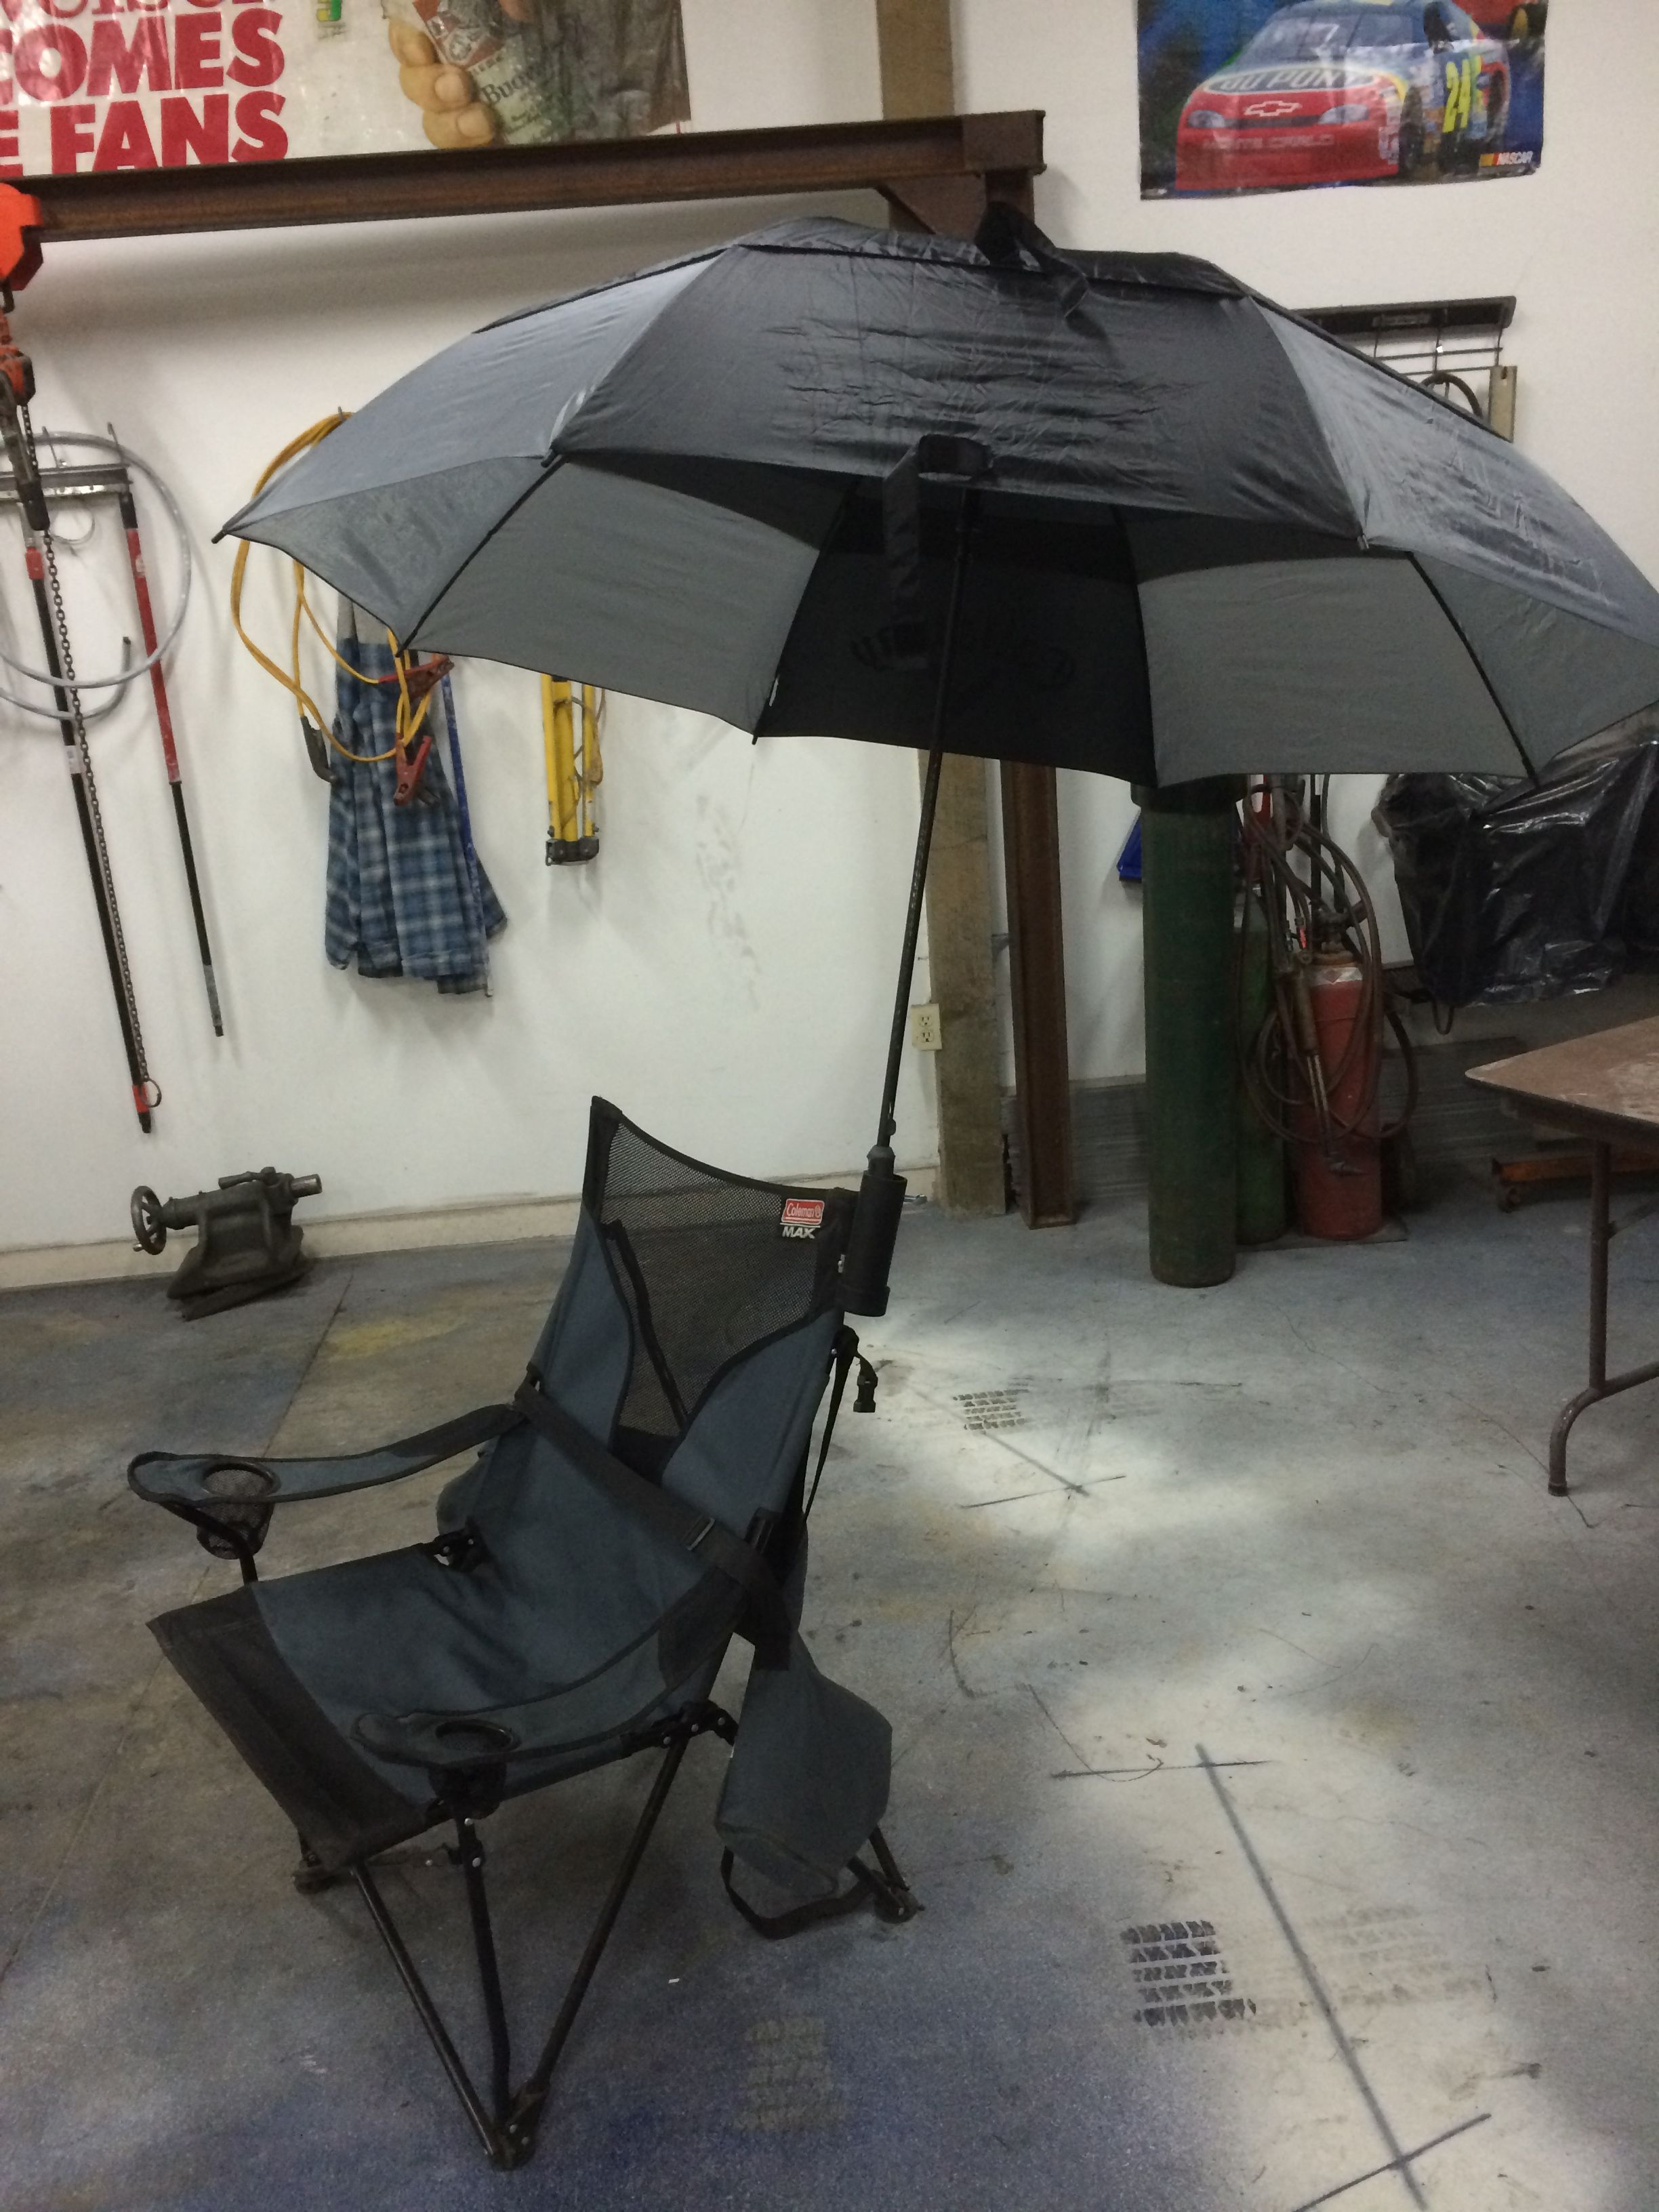 Fishing Chair Clamps Green 2005 Trailer Umbrella Holder To Most Chairs Clamp On